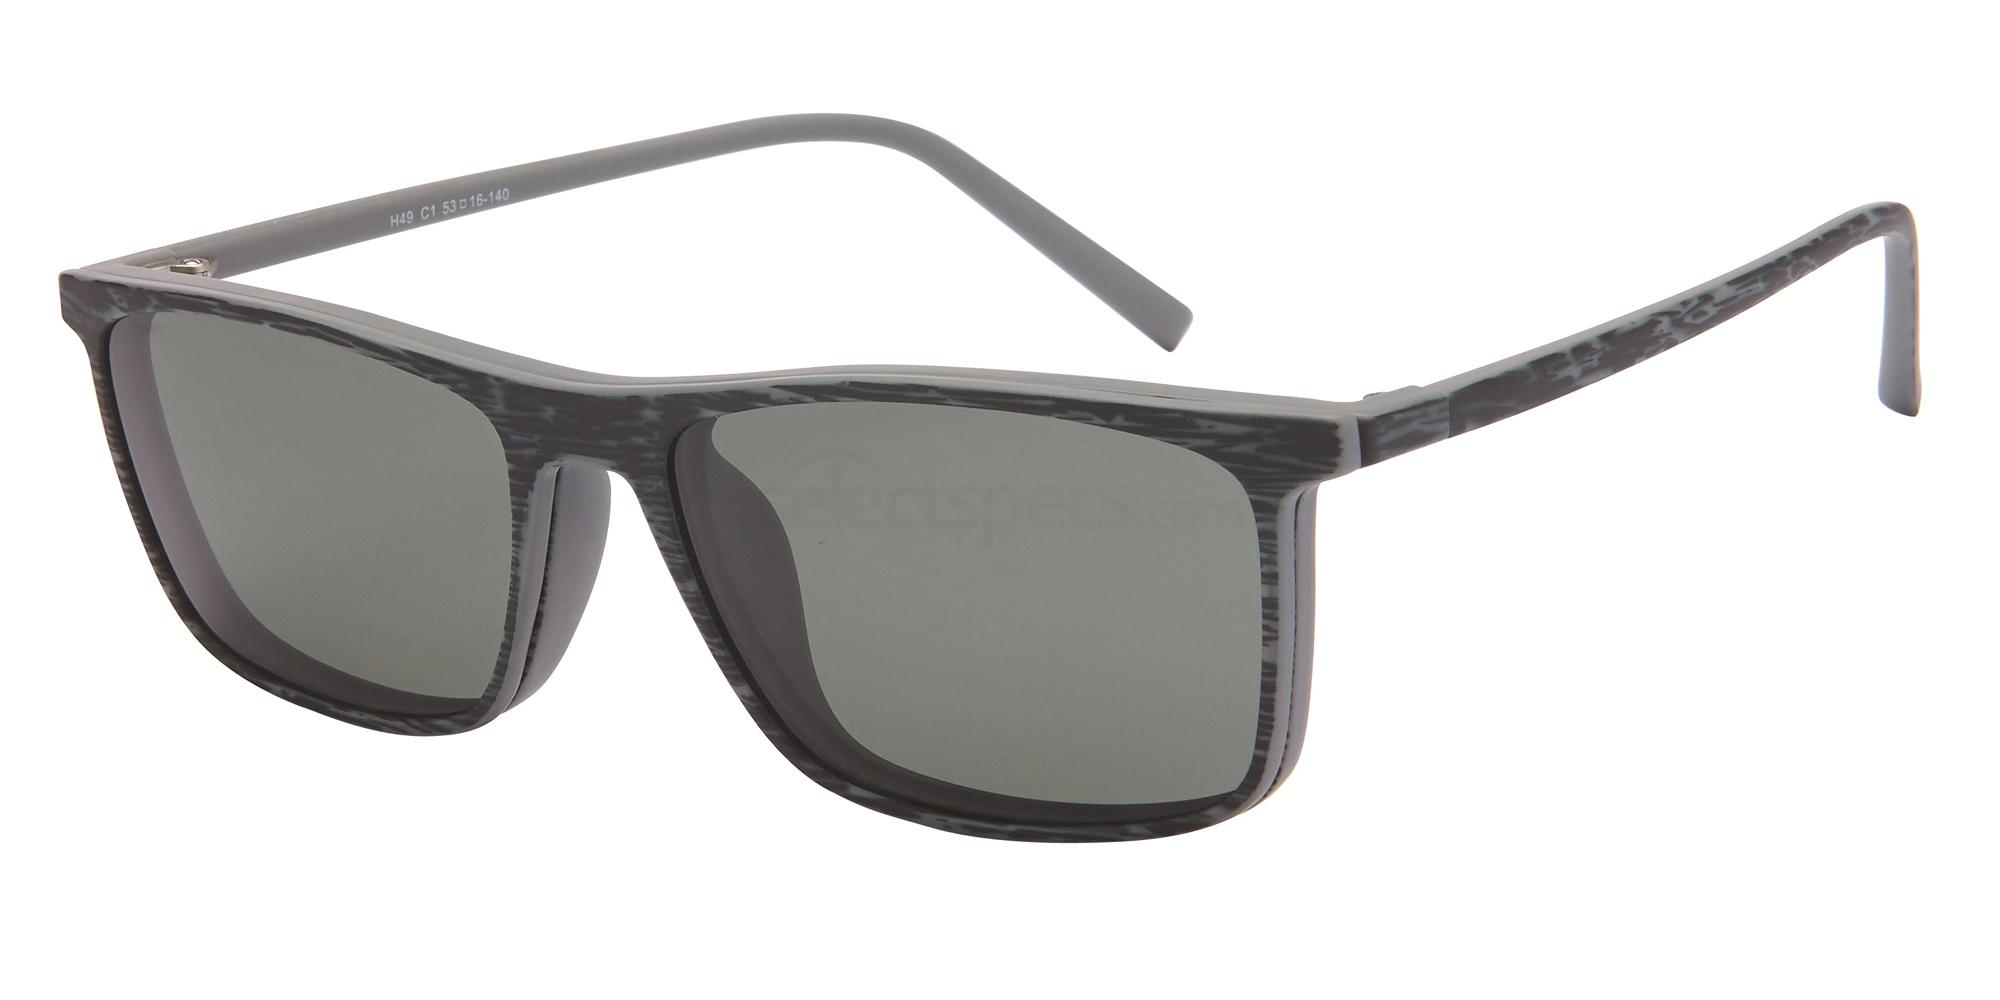 C1 H49 - With Clip on Glasses, Halstrom